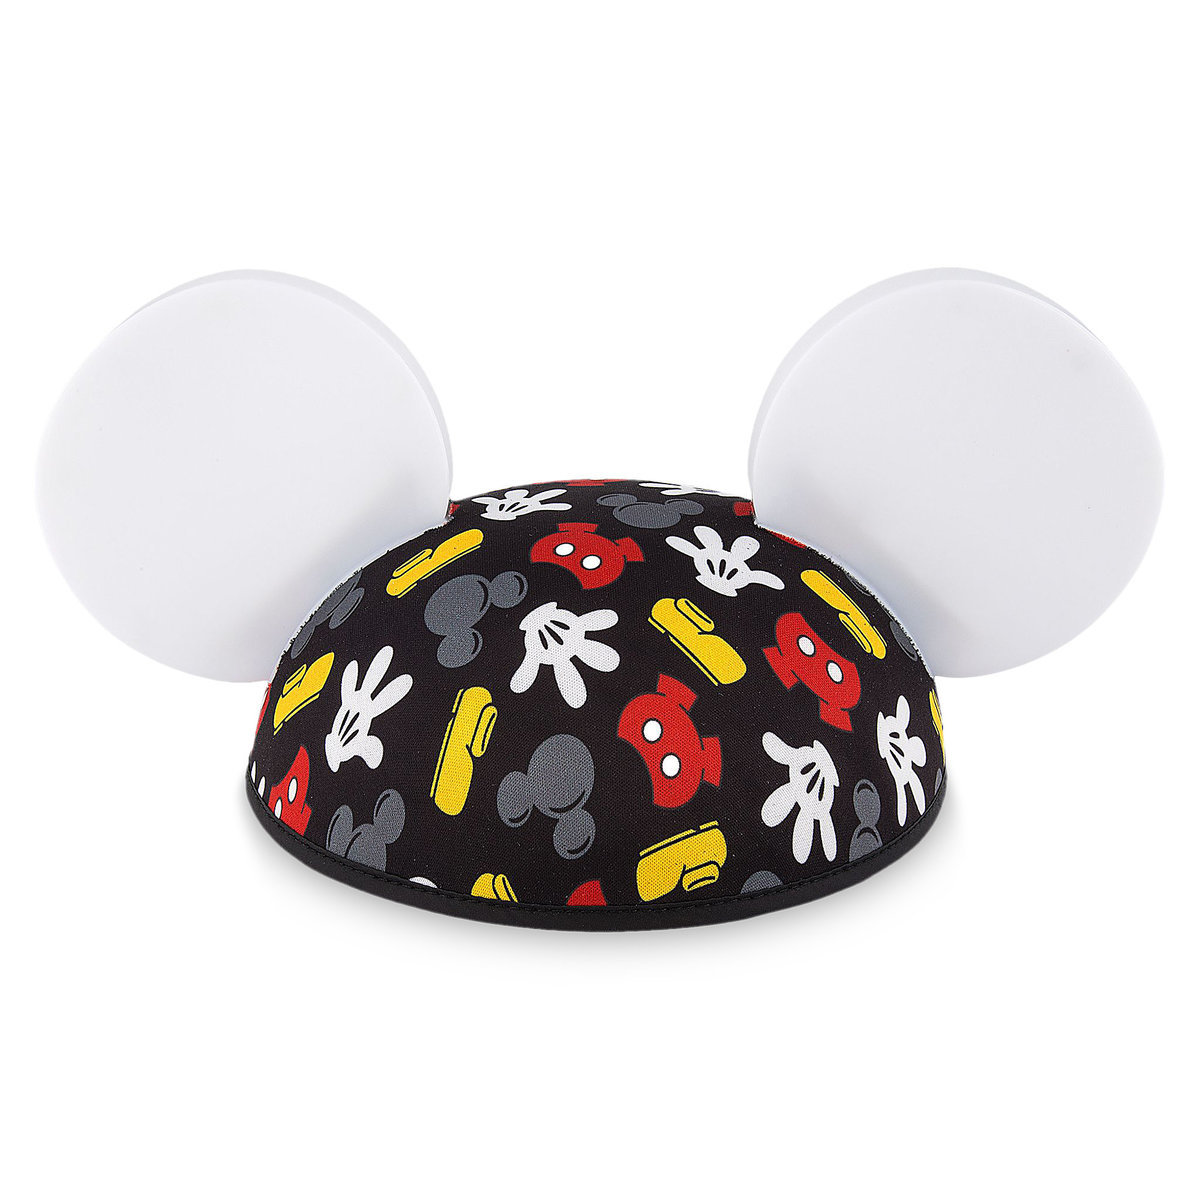 82d47e9e43a Product Image of Mickey Mouse Made with Magic Ear Hat 3.0   1